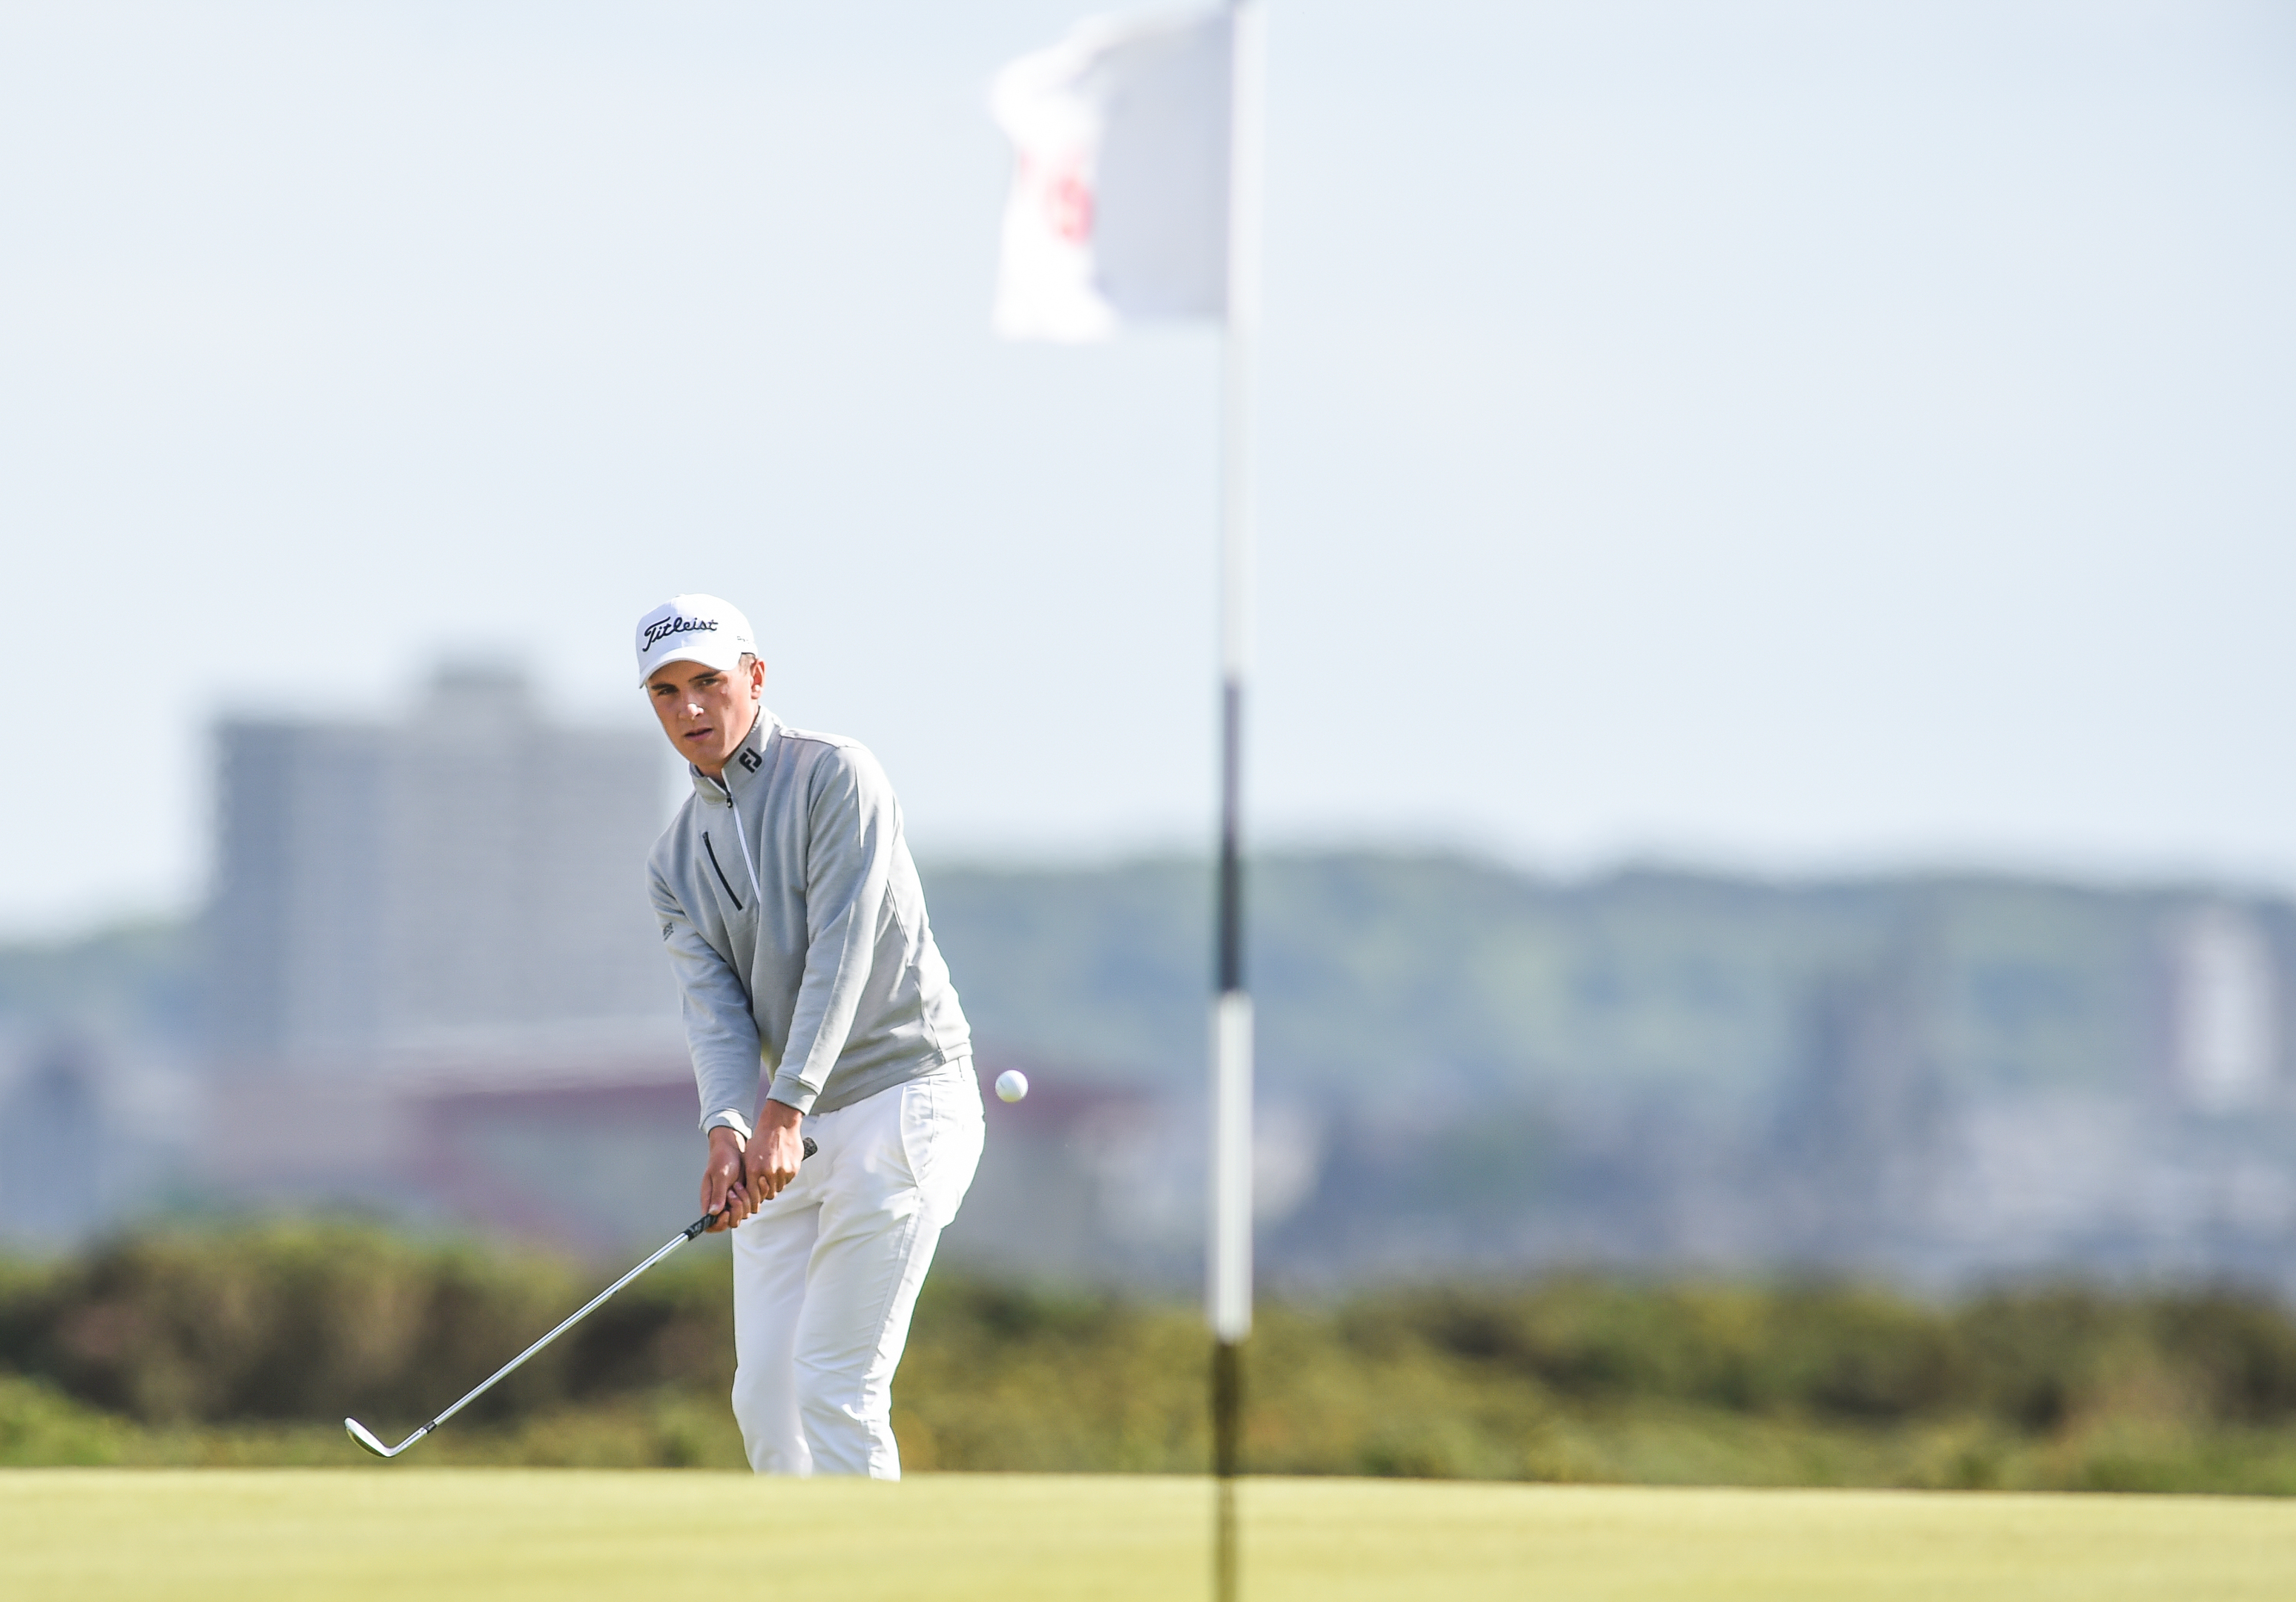 Sam Locke booked his place at the Open by winning the Final Qualifying event at The Renaissance Club.